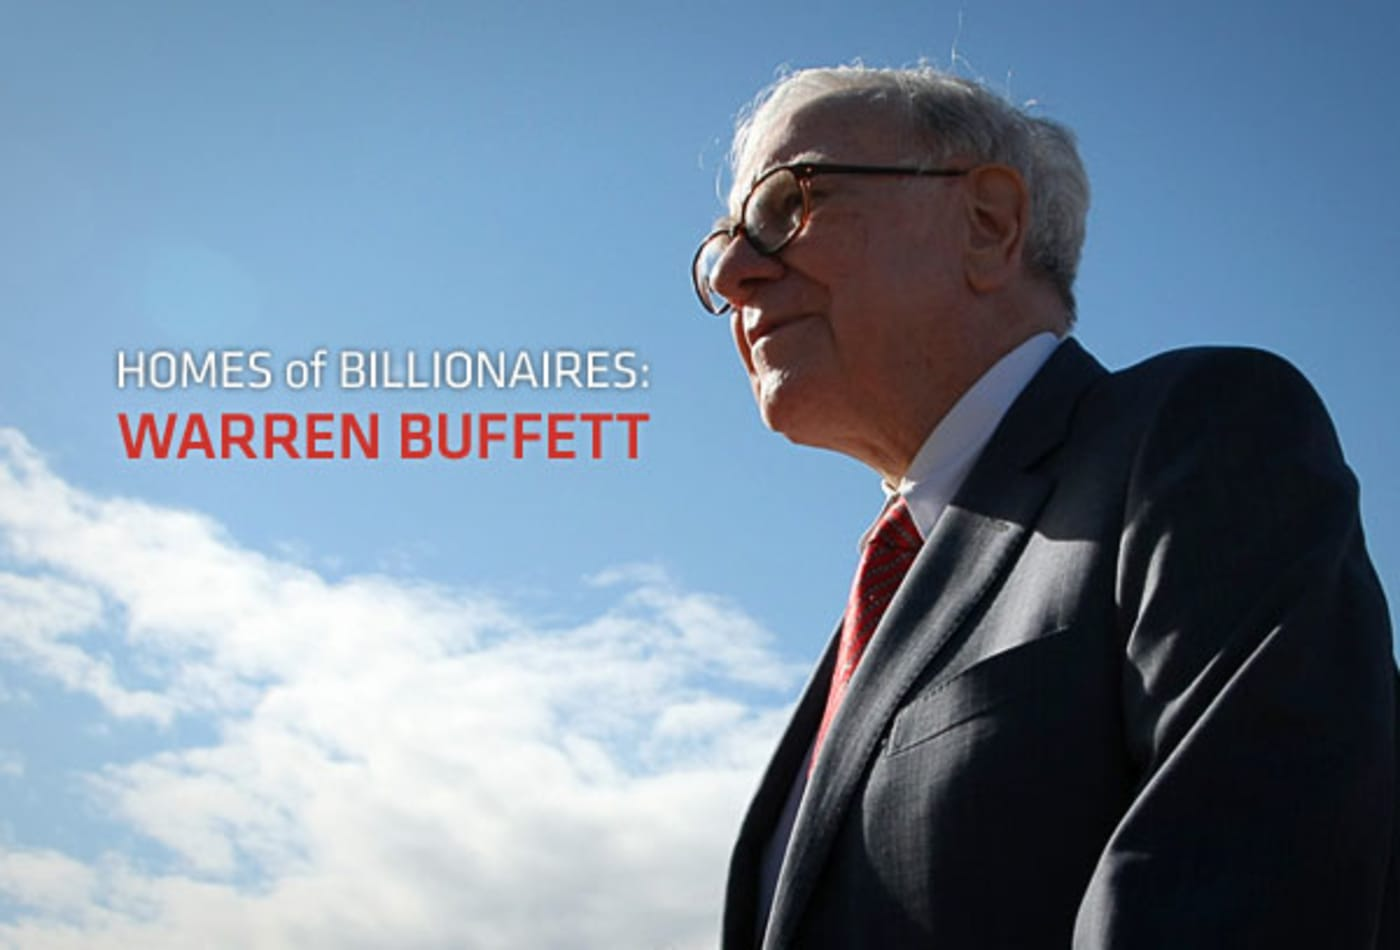 48336310 Cover-Homes-Billionaires-Warren-Buffett-CNBC.jpg